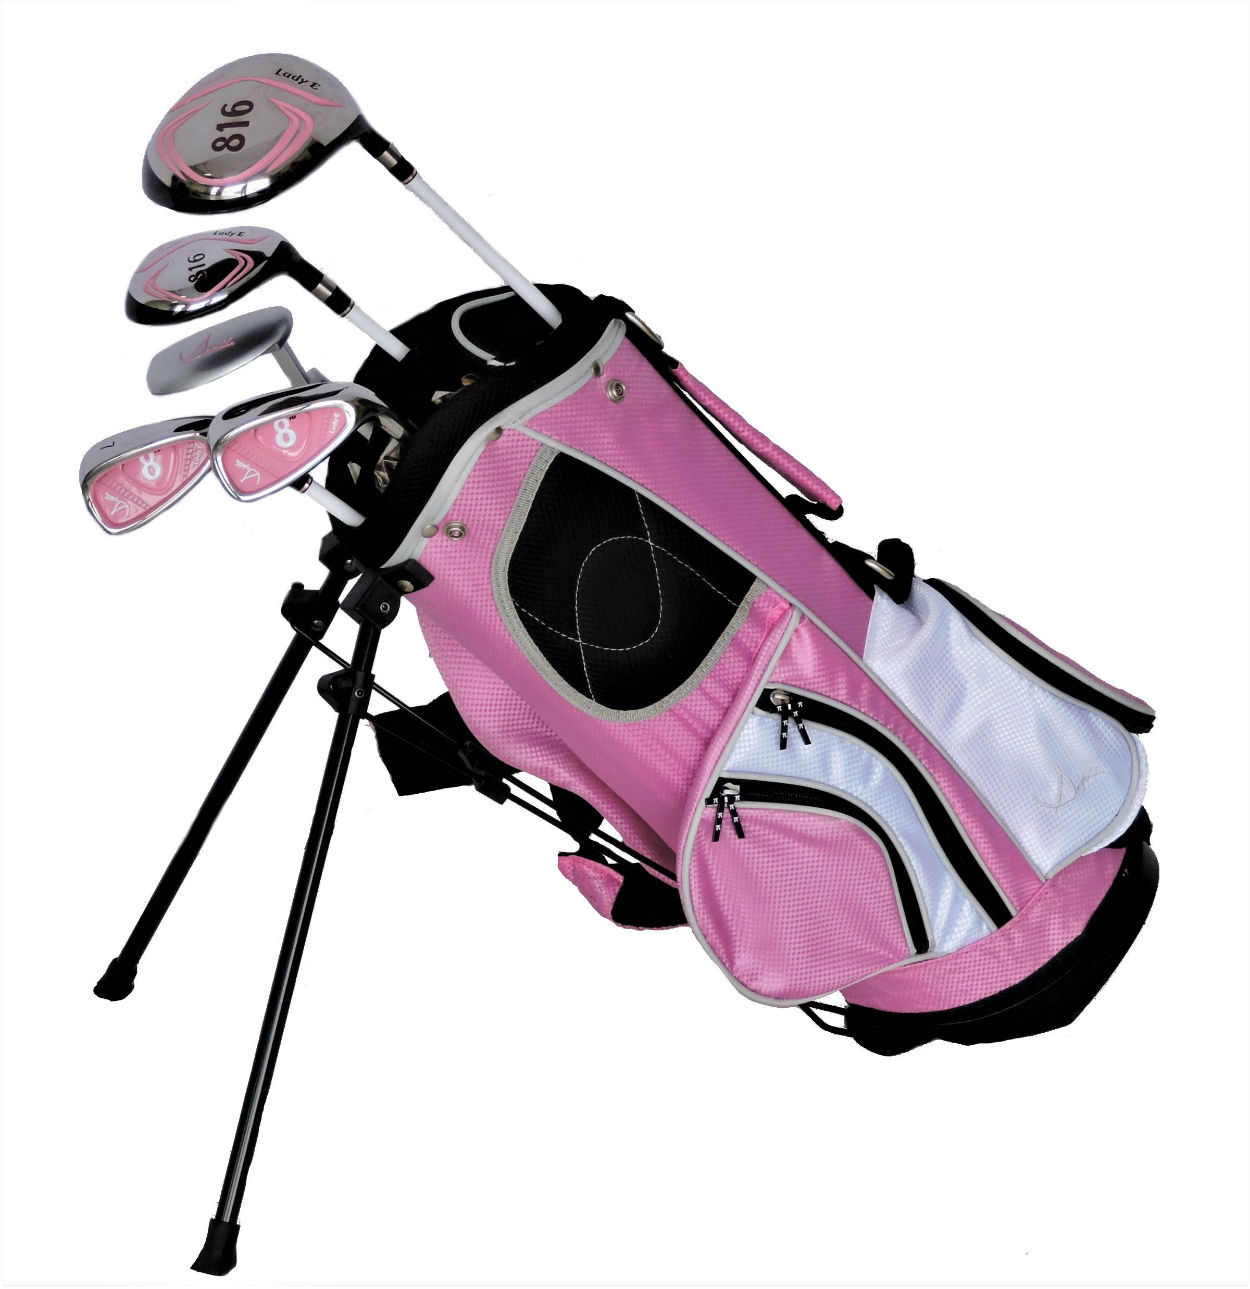 Sephlin - Lady E Girls Pink Golf Set *5* Pcs &  Bag  Ages 2-5 RH